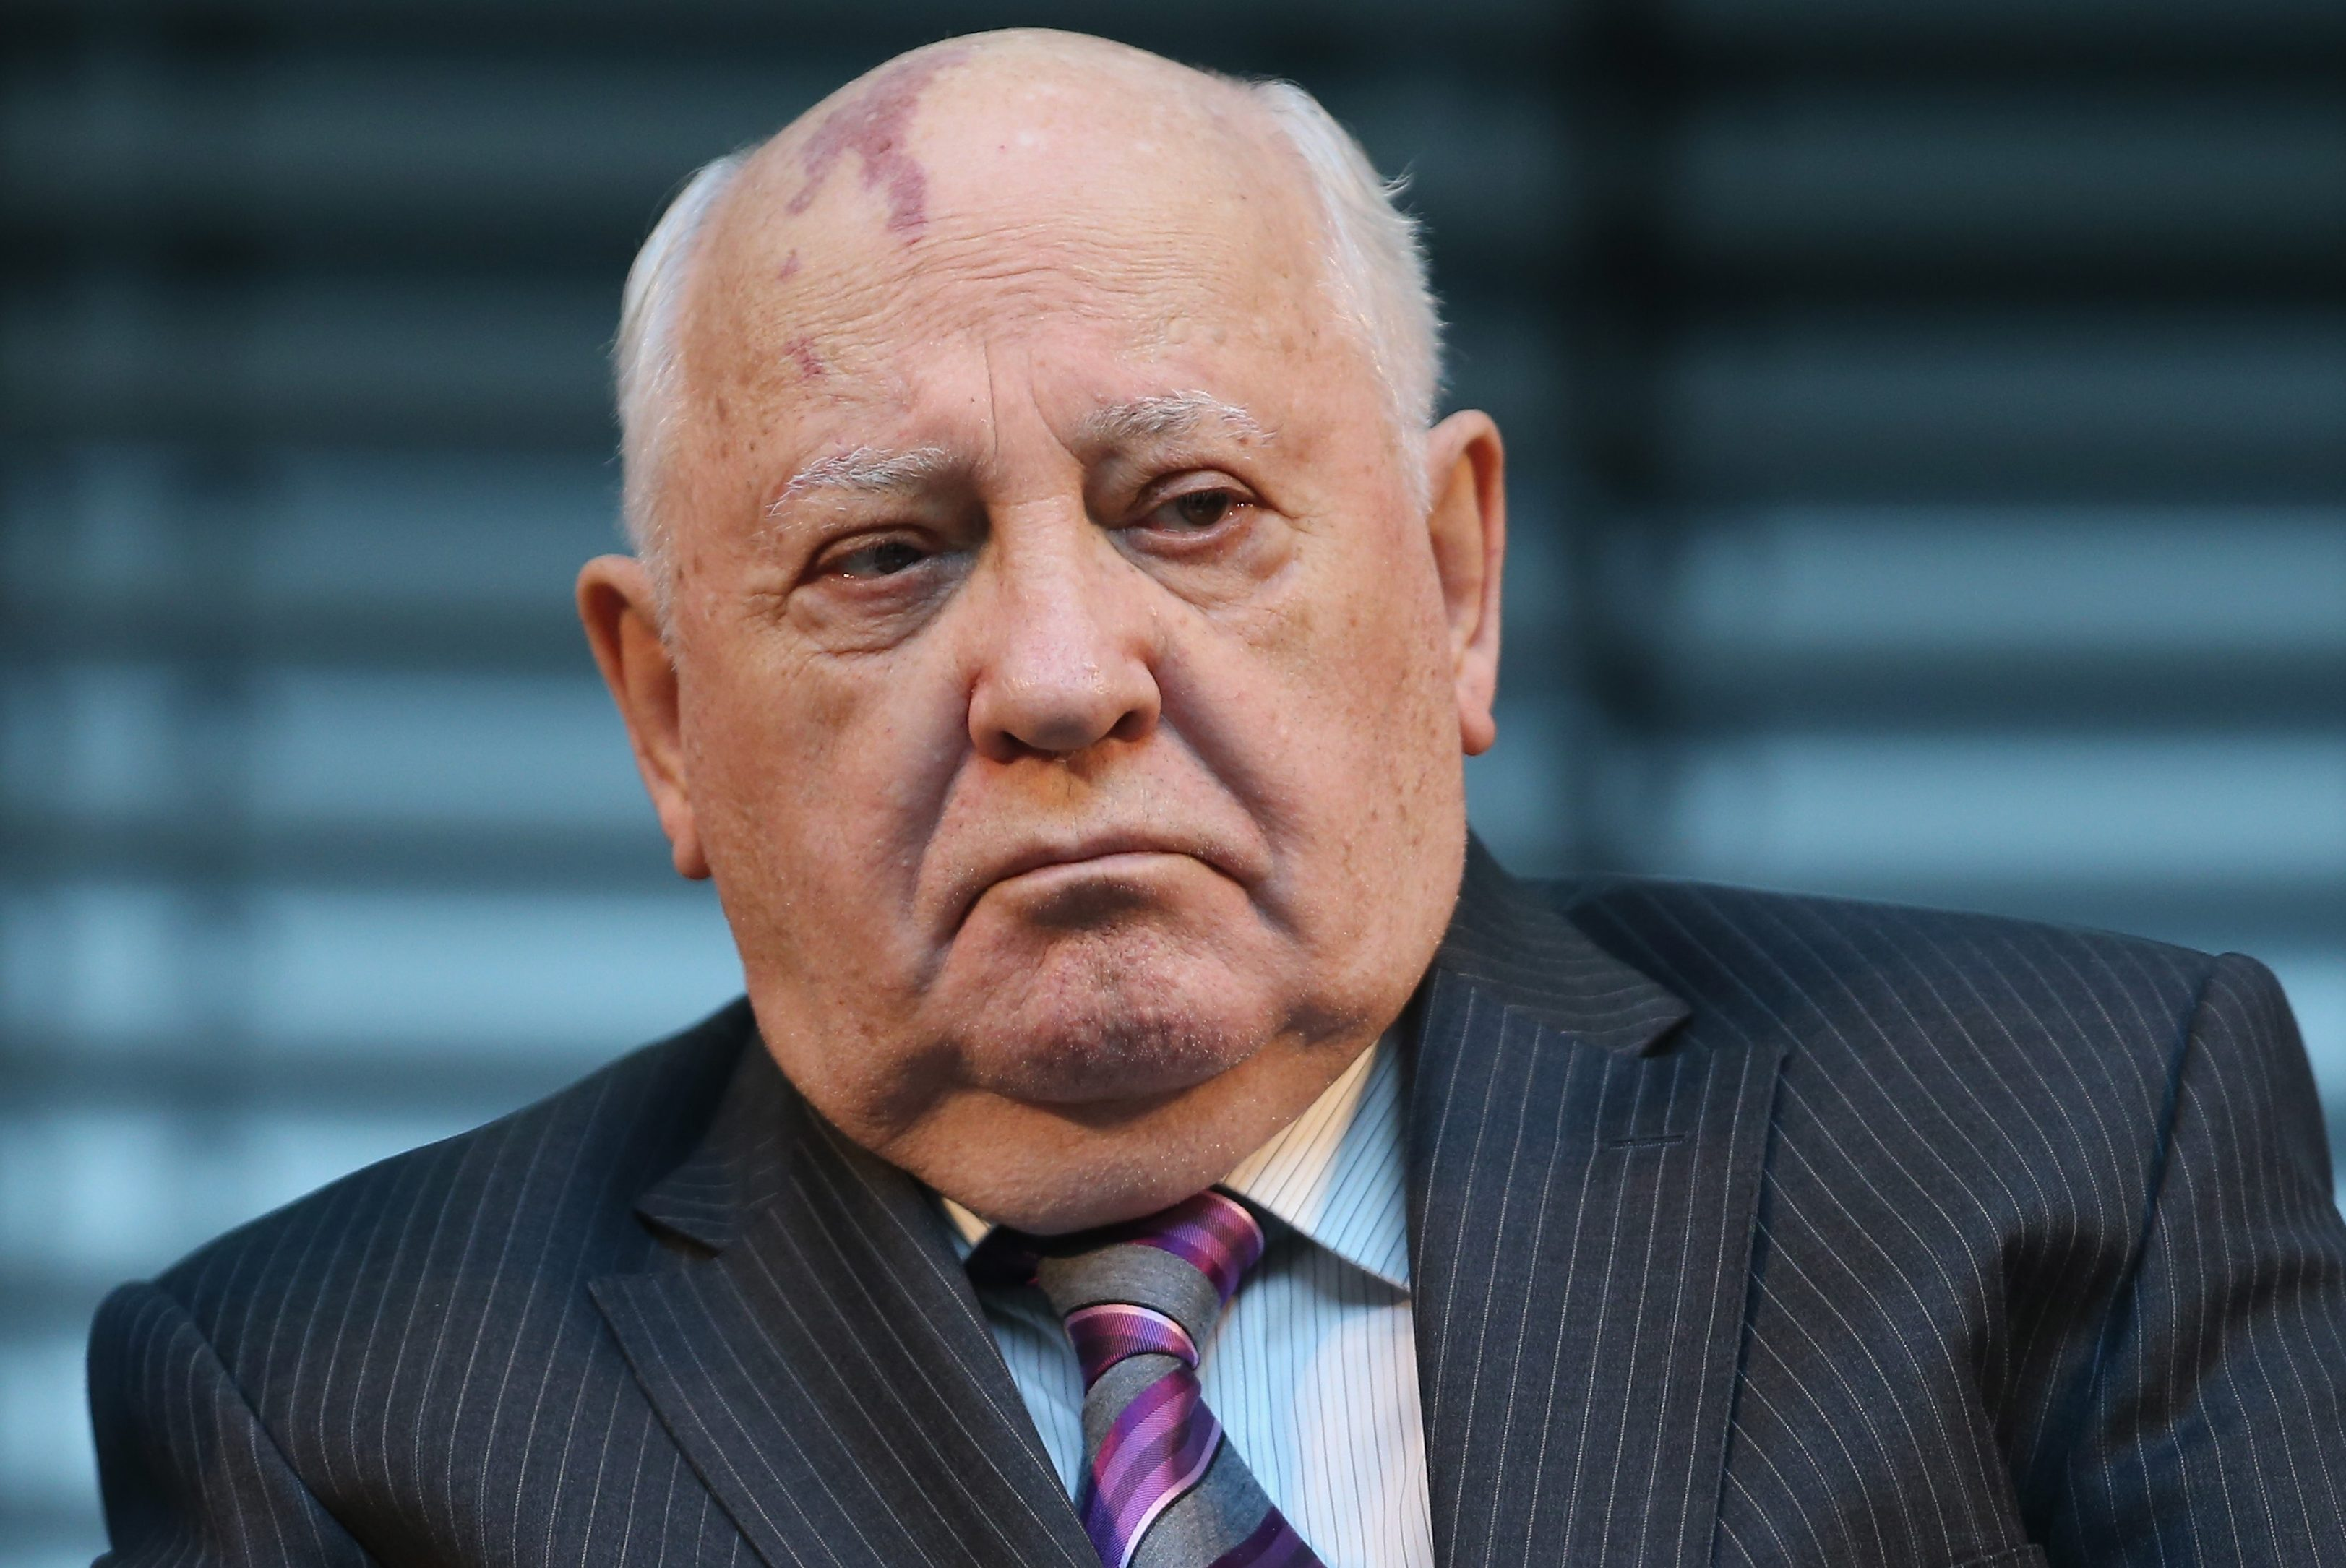 BERLIN, GERMANY - NOVEMBER 08:  Former Soviet leader Mikhail Gorbachev attends a podium discussion on the eve of the 25th anniversary of the fall of the Berlin Wall on November 8, 2014 in Berlin, Germany. Gorbachev's liberalization of the political climate within the Cold War-era eastern Bloc allowed for mass demonstrations and ultimately the overthrow of communist dictatorships across the region. Germany will celebrate the 25th anniversary of the fall of the Berlin Wall on November 9 with a 15km light installation that runs along the course of the former Wall that once divided Berlin into communist East and capitalist West.  (Photo by Sean Gallup/Getty Images)